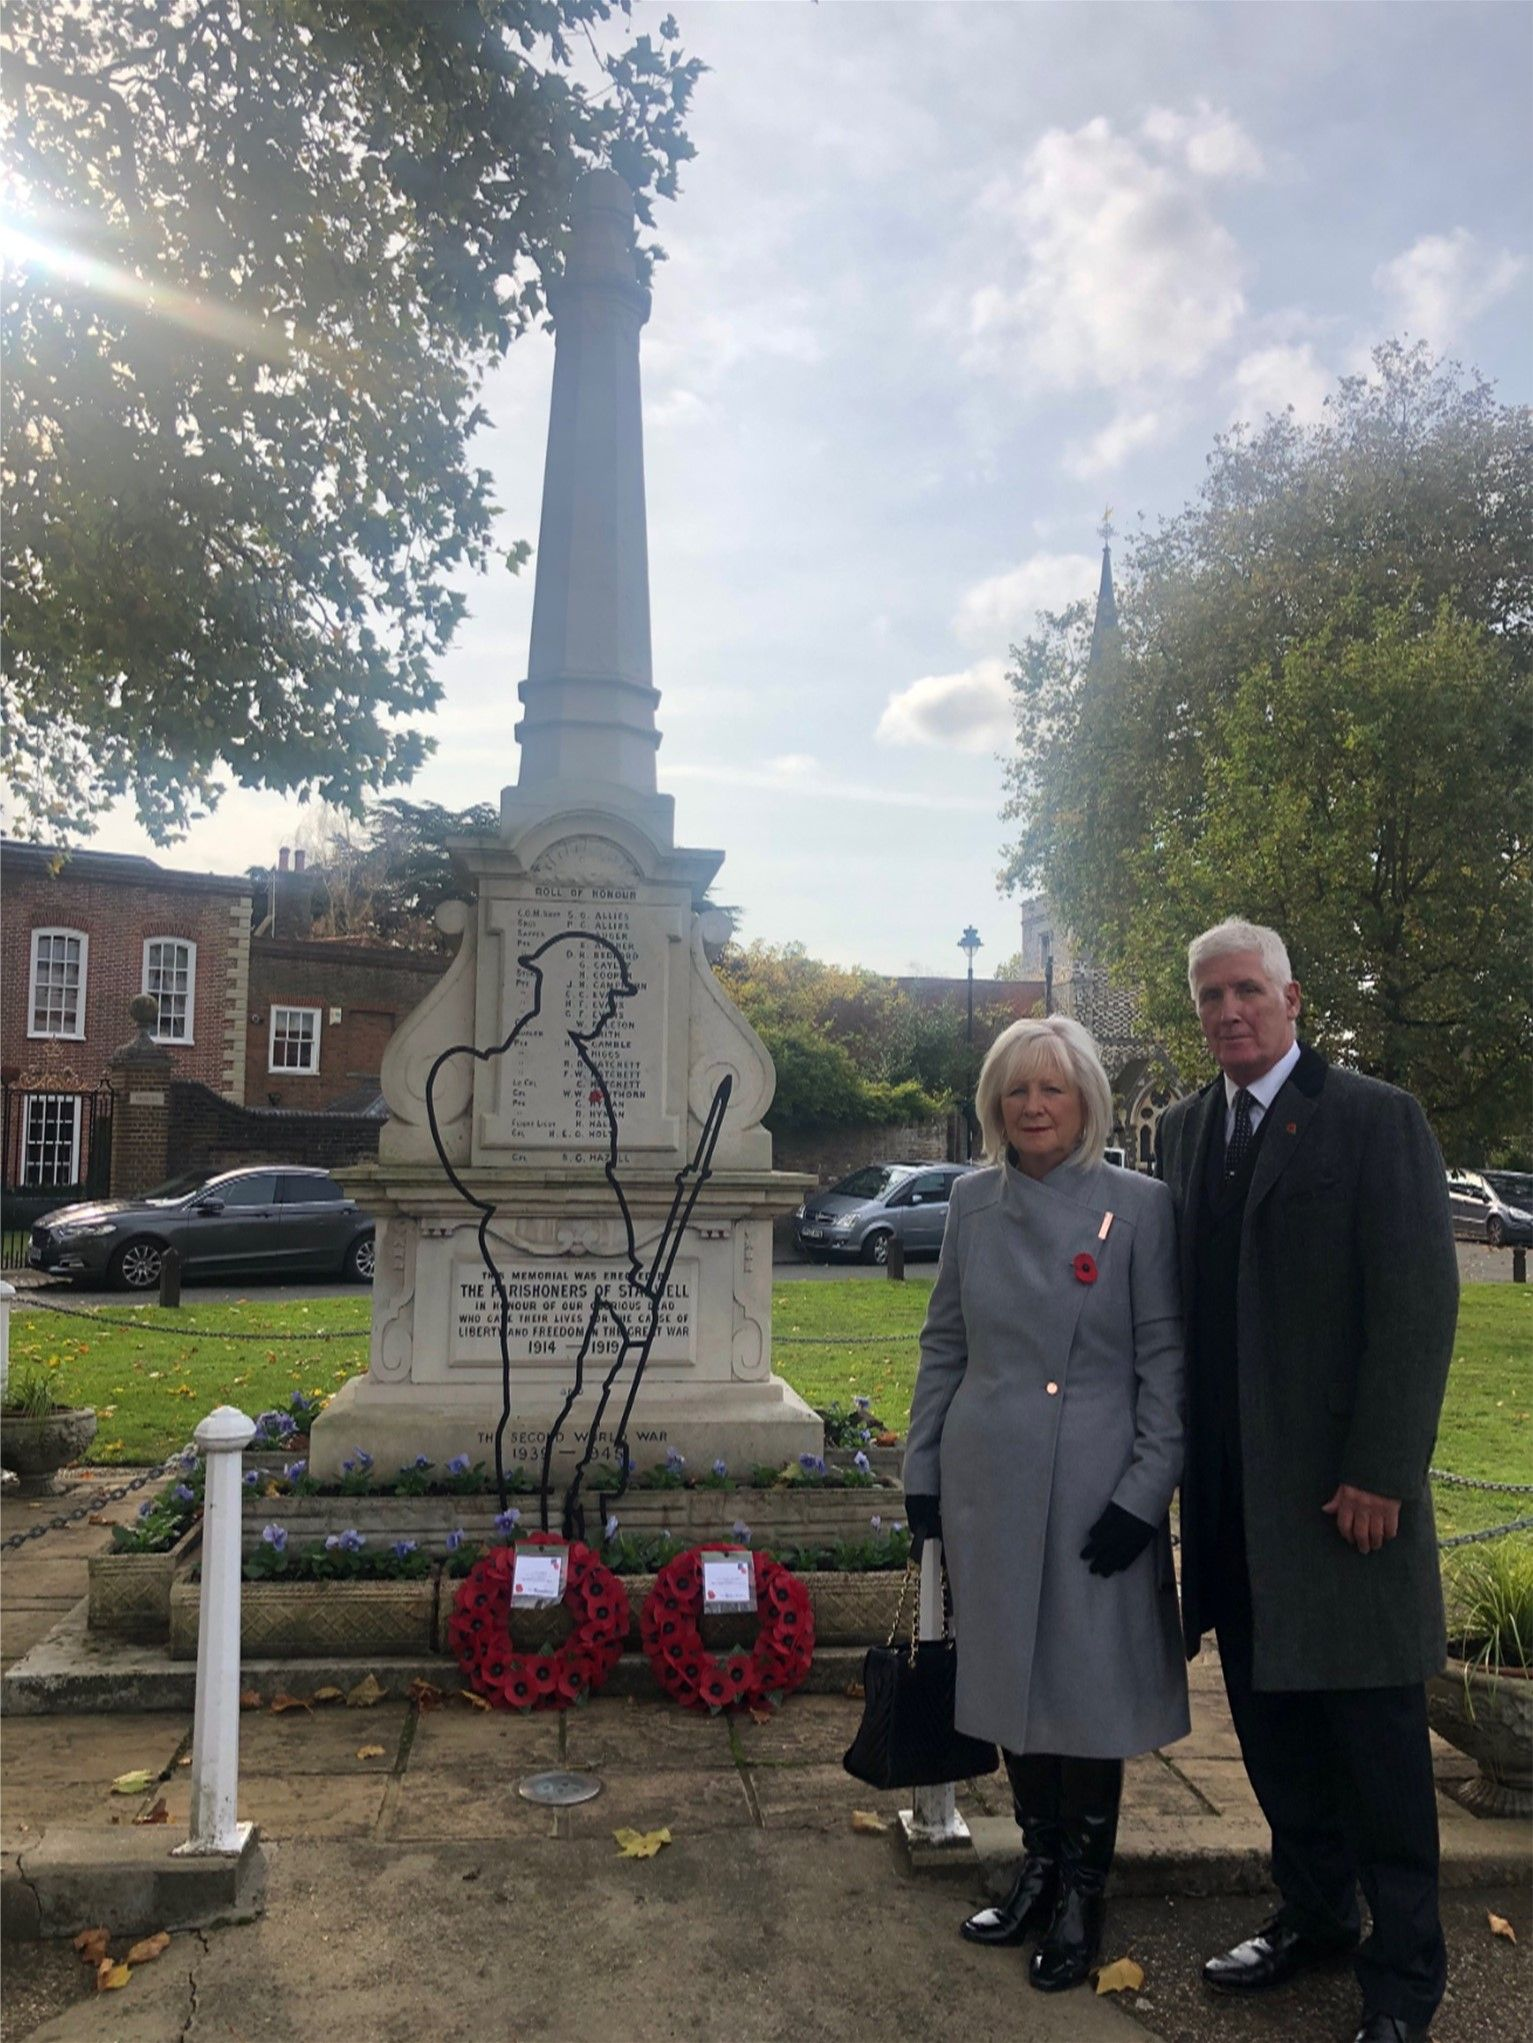 Remembrance service, Stanwell.  Credit: Spelthorne Borough Council  Copyright: Spelthorne Borough Council